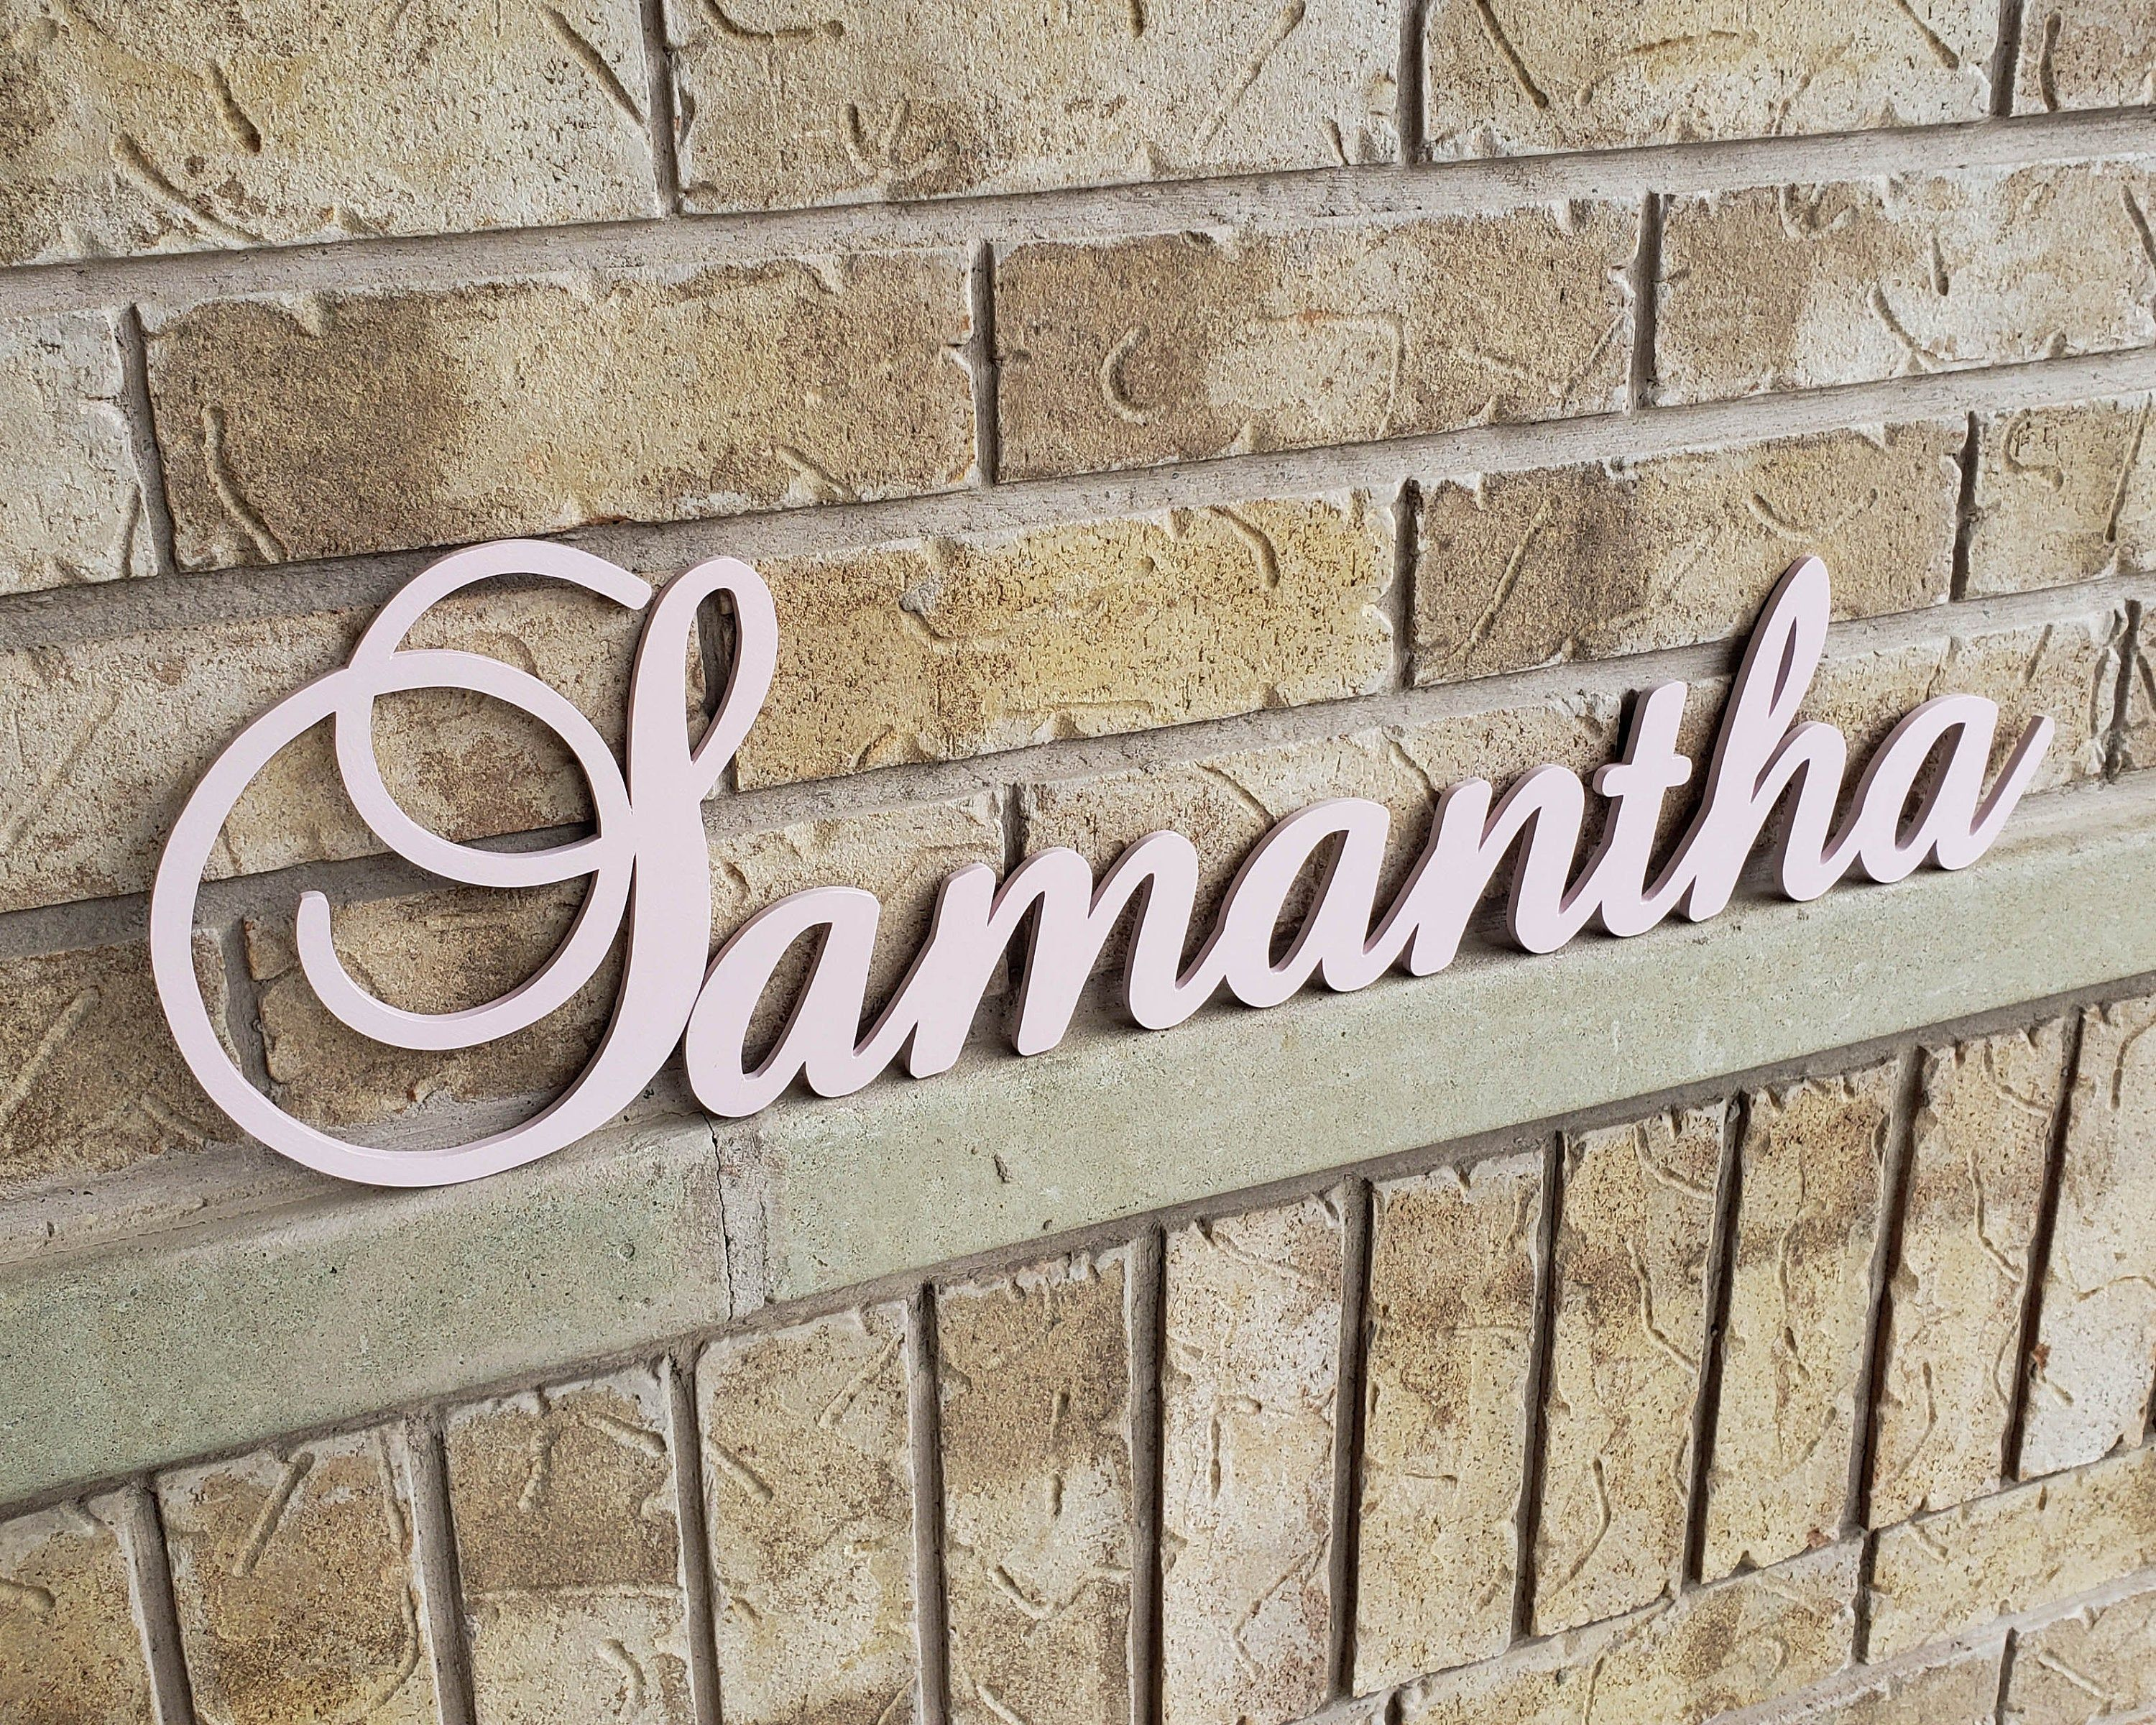 Large Wooden Letters For Nursery Decor Nursery Name Sign Baby Name Sign Personalized Wood Letters Kids Name Sign In 2020 Wooden Letters For Nursery Large Wooden Letters Wooden Name Signs